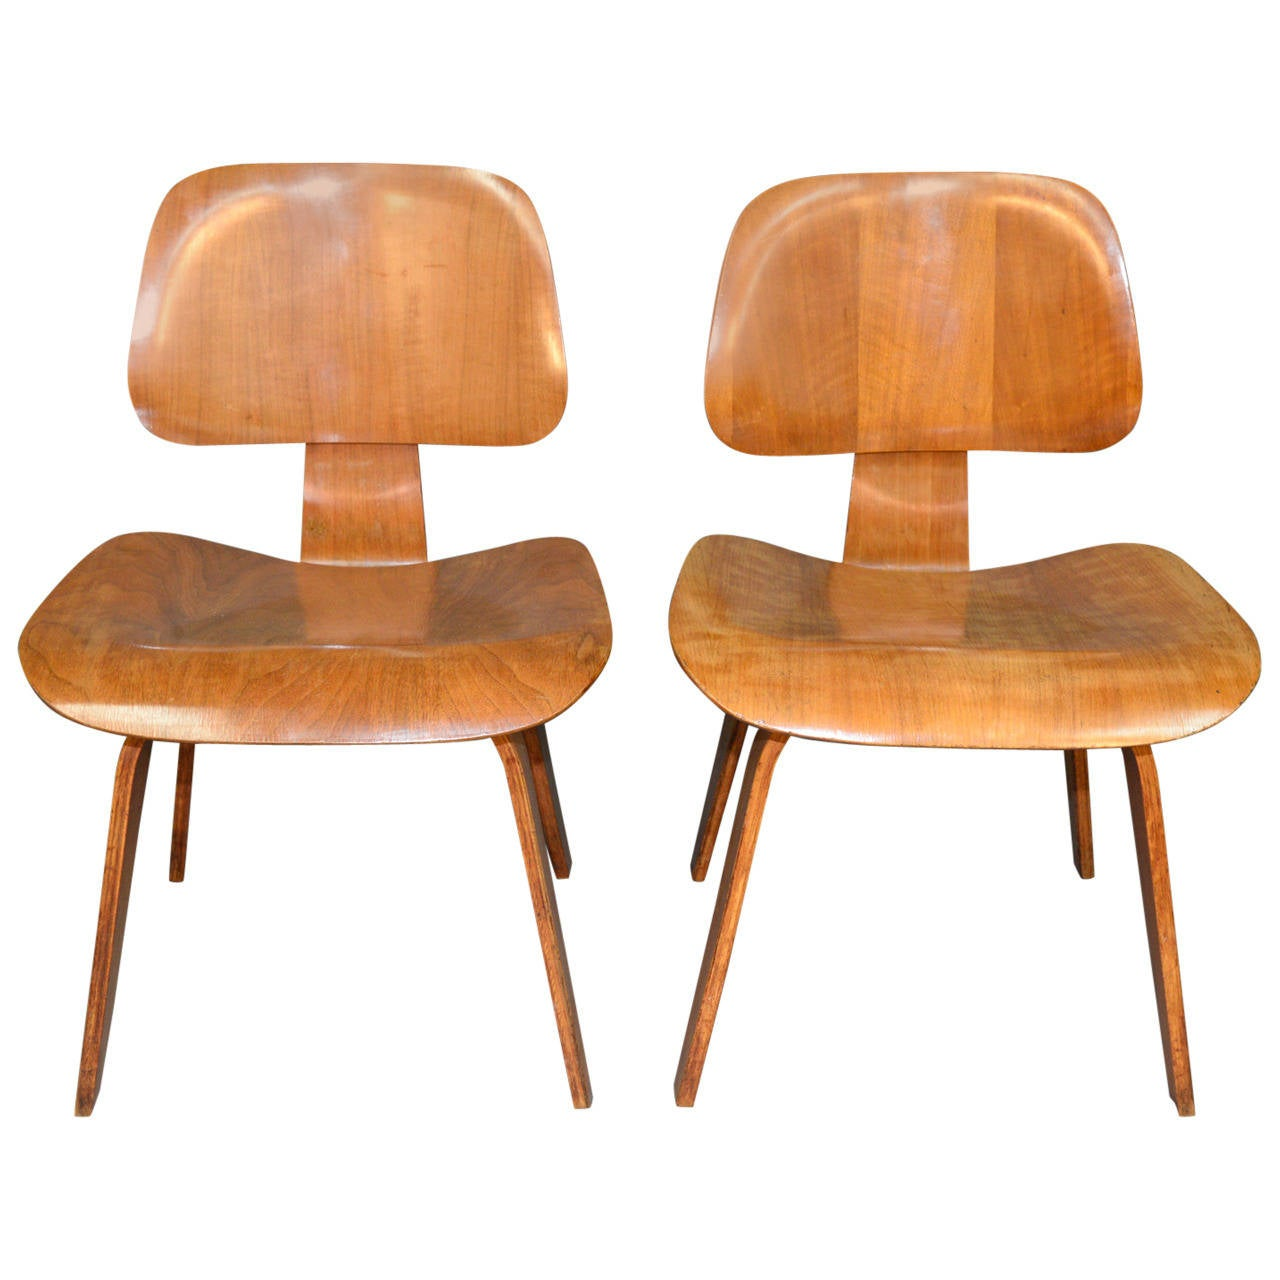 Charles and ray eames pair of dcw chairs at 1stdibs - Charles eames and ray eames ...